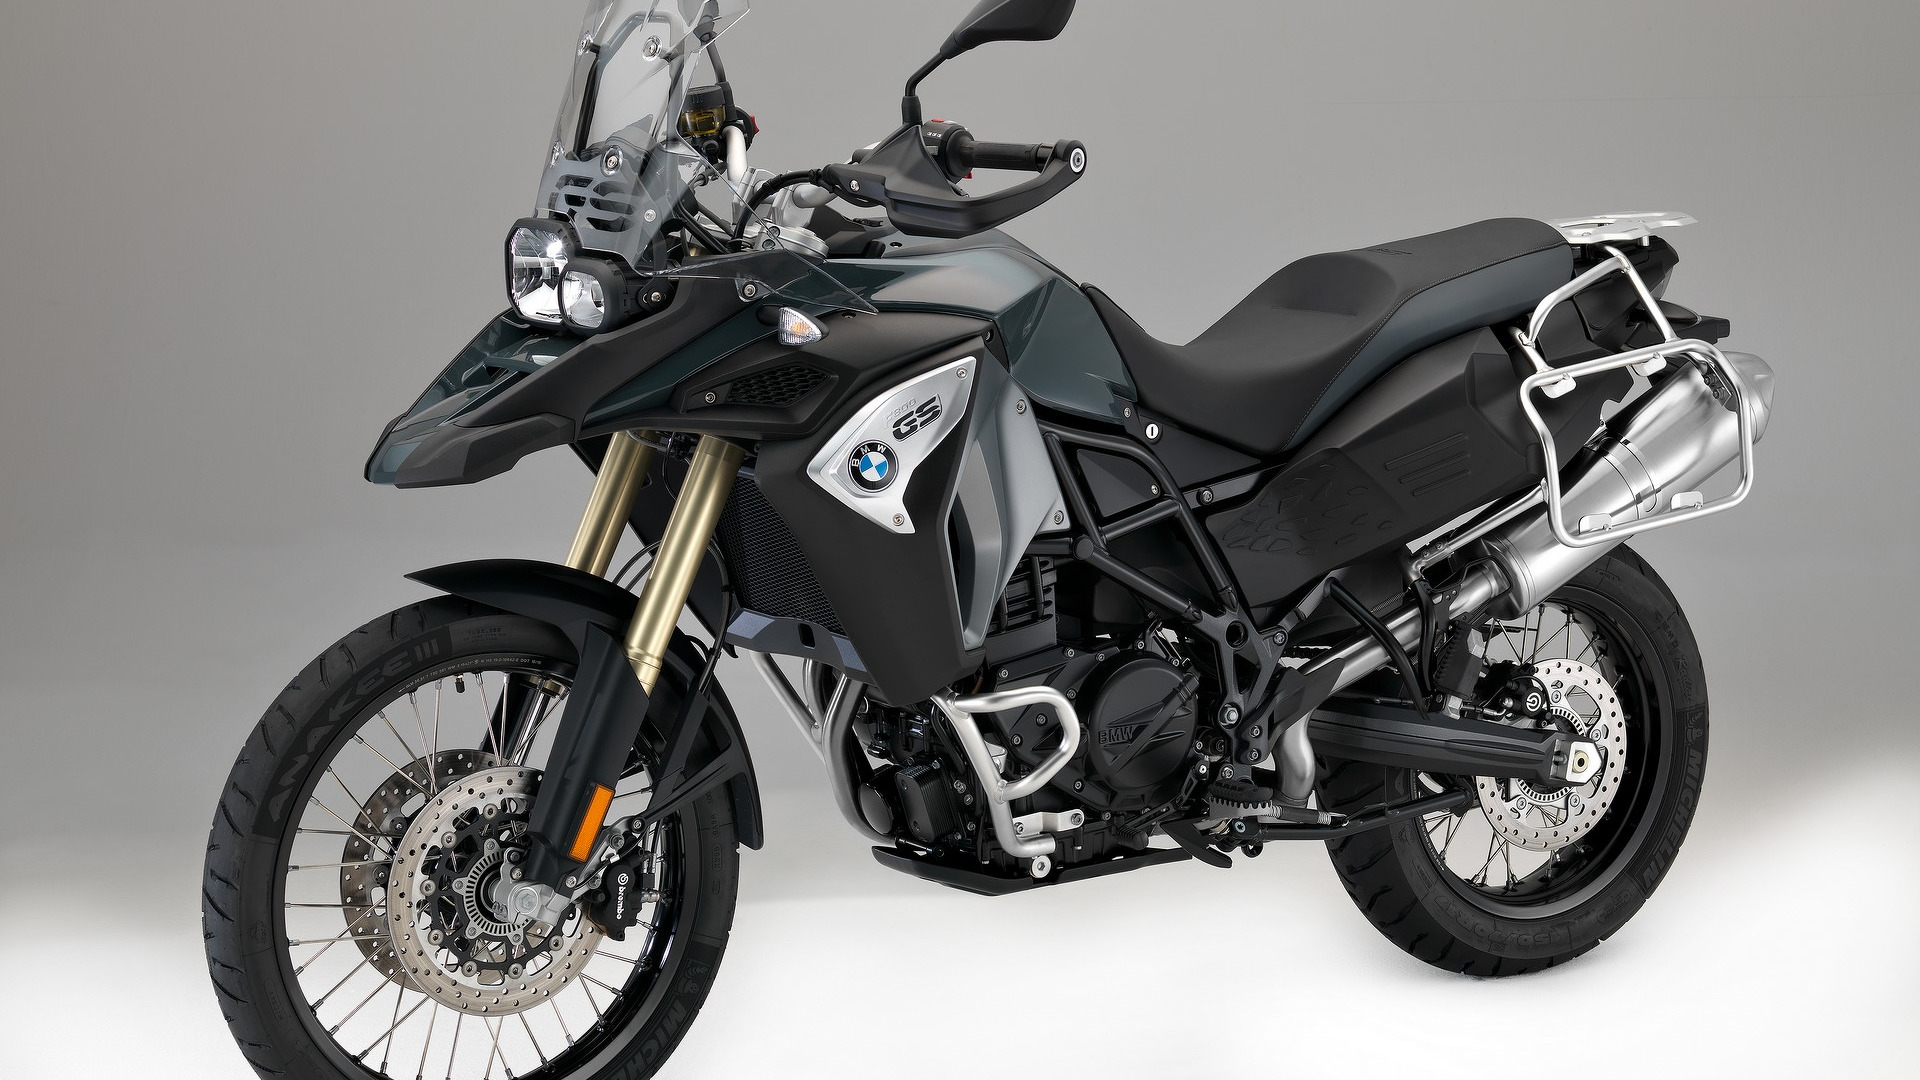 bmw motorrad lan a linha 2017 da f 800 gs adventure portal lubes. Black Bedroom Furniture Sets. Home Design Ideas